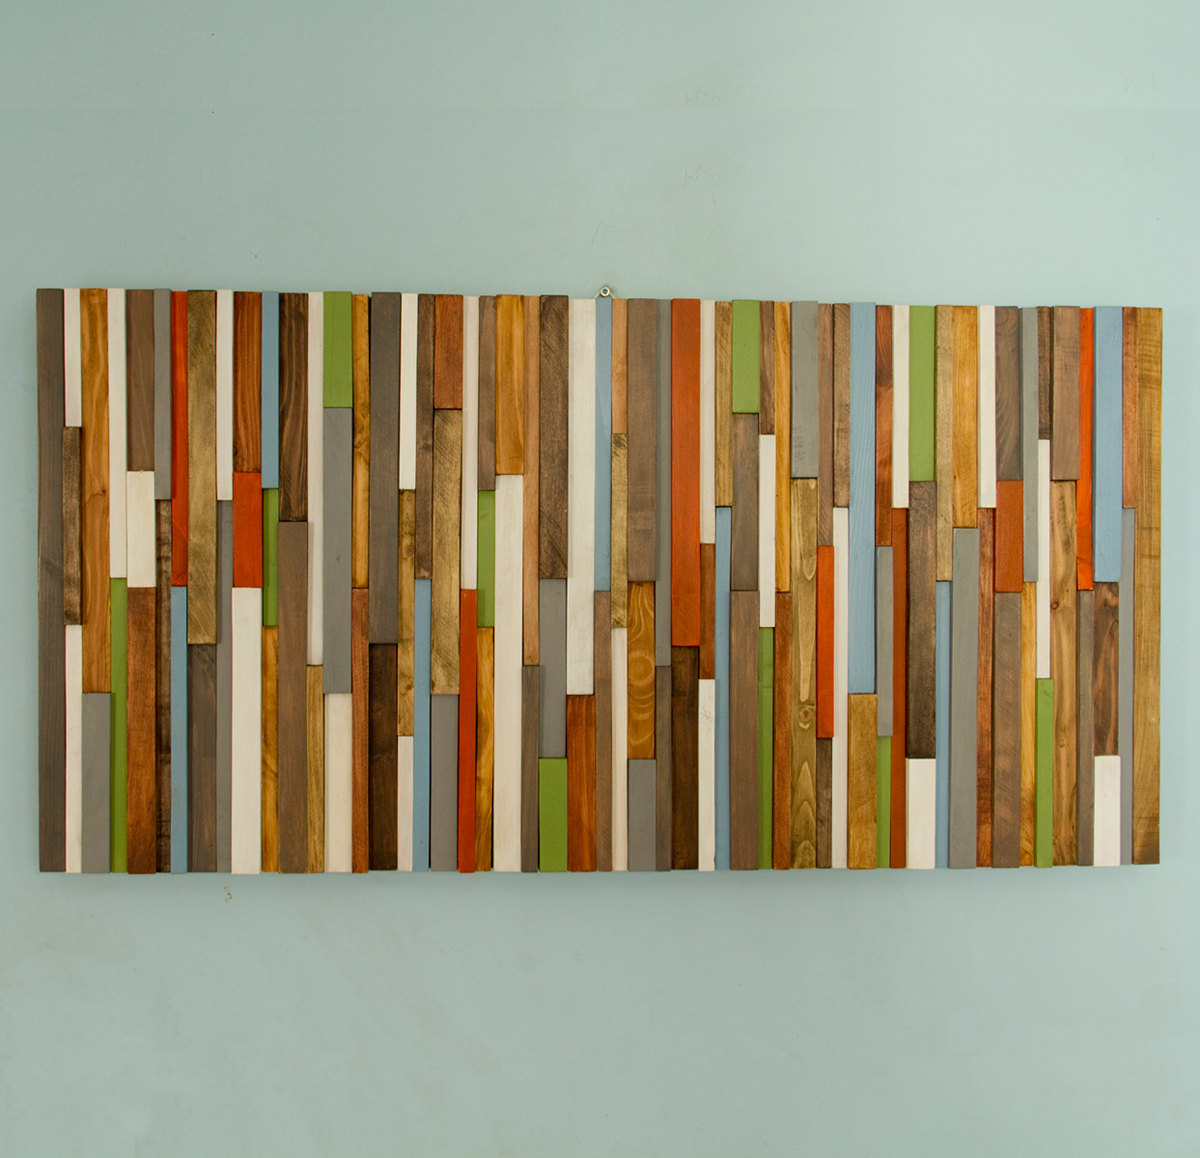 Modern Headboard Wood Wall Art Sculpture, earth tones